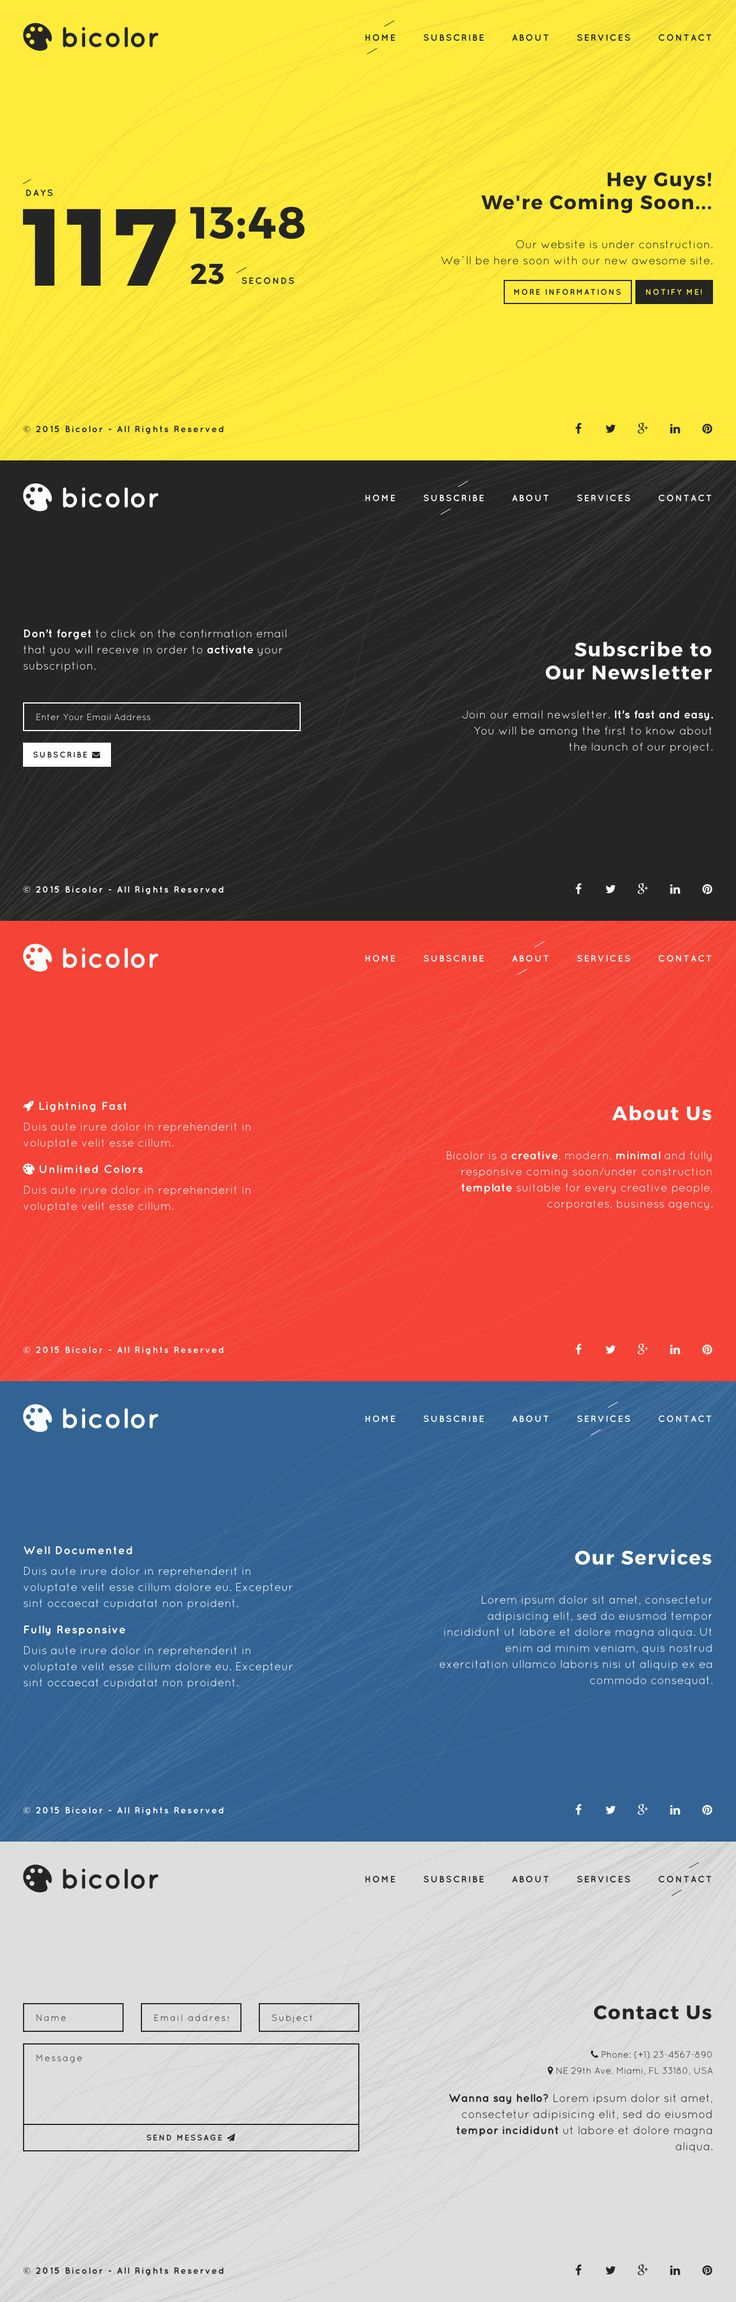 'Bicolor' is a colorful launching soon HTML template perfect for announcing your next product launch. The responsive template comes with a big countdown timer, AJAX submitting newsletter signup form (that can integrate to MailChimp) and colorful sections with more information if needed.